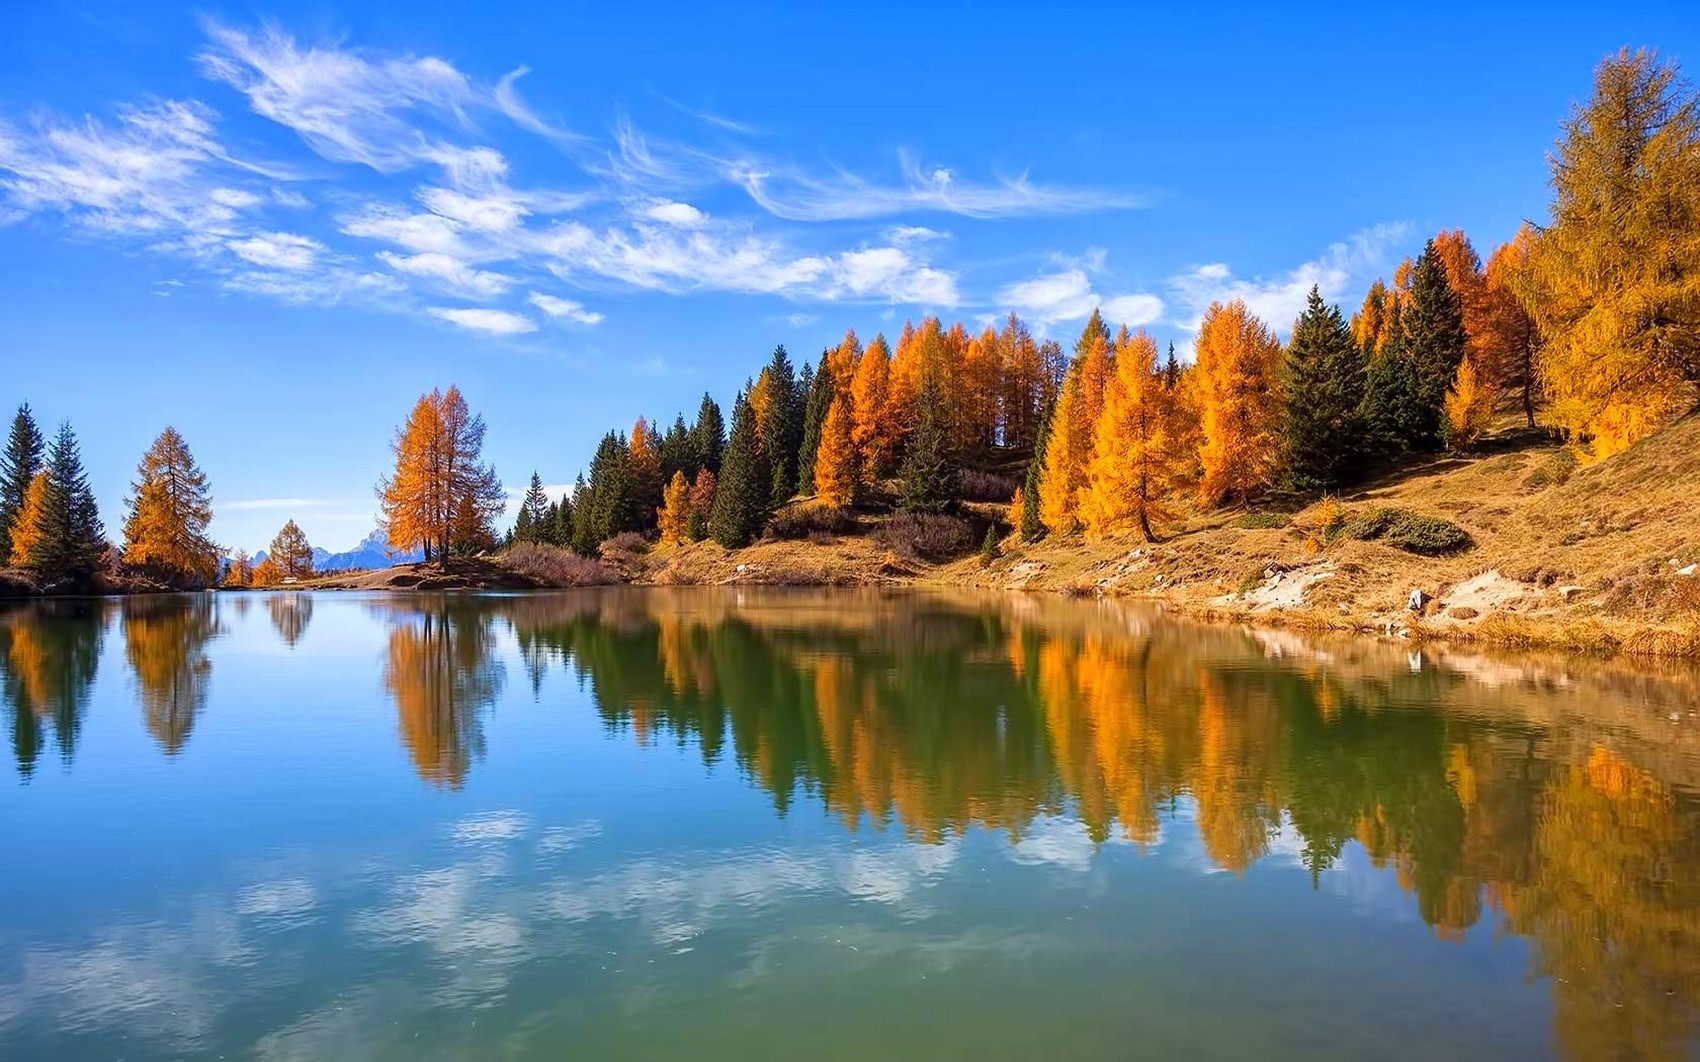 Fall Trees Background Wallpaper Nature Landscape Lake Fall Forest Italy Trees Water